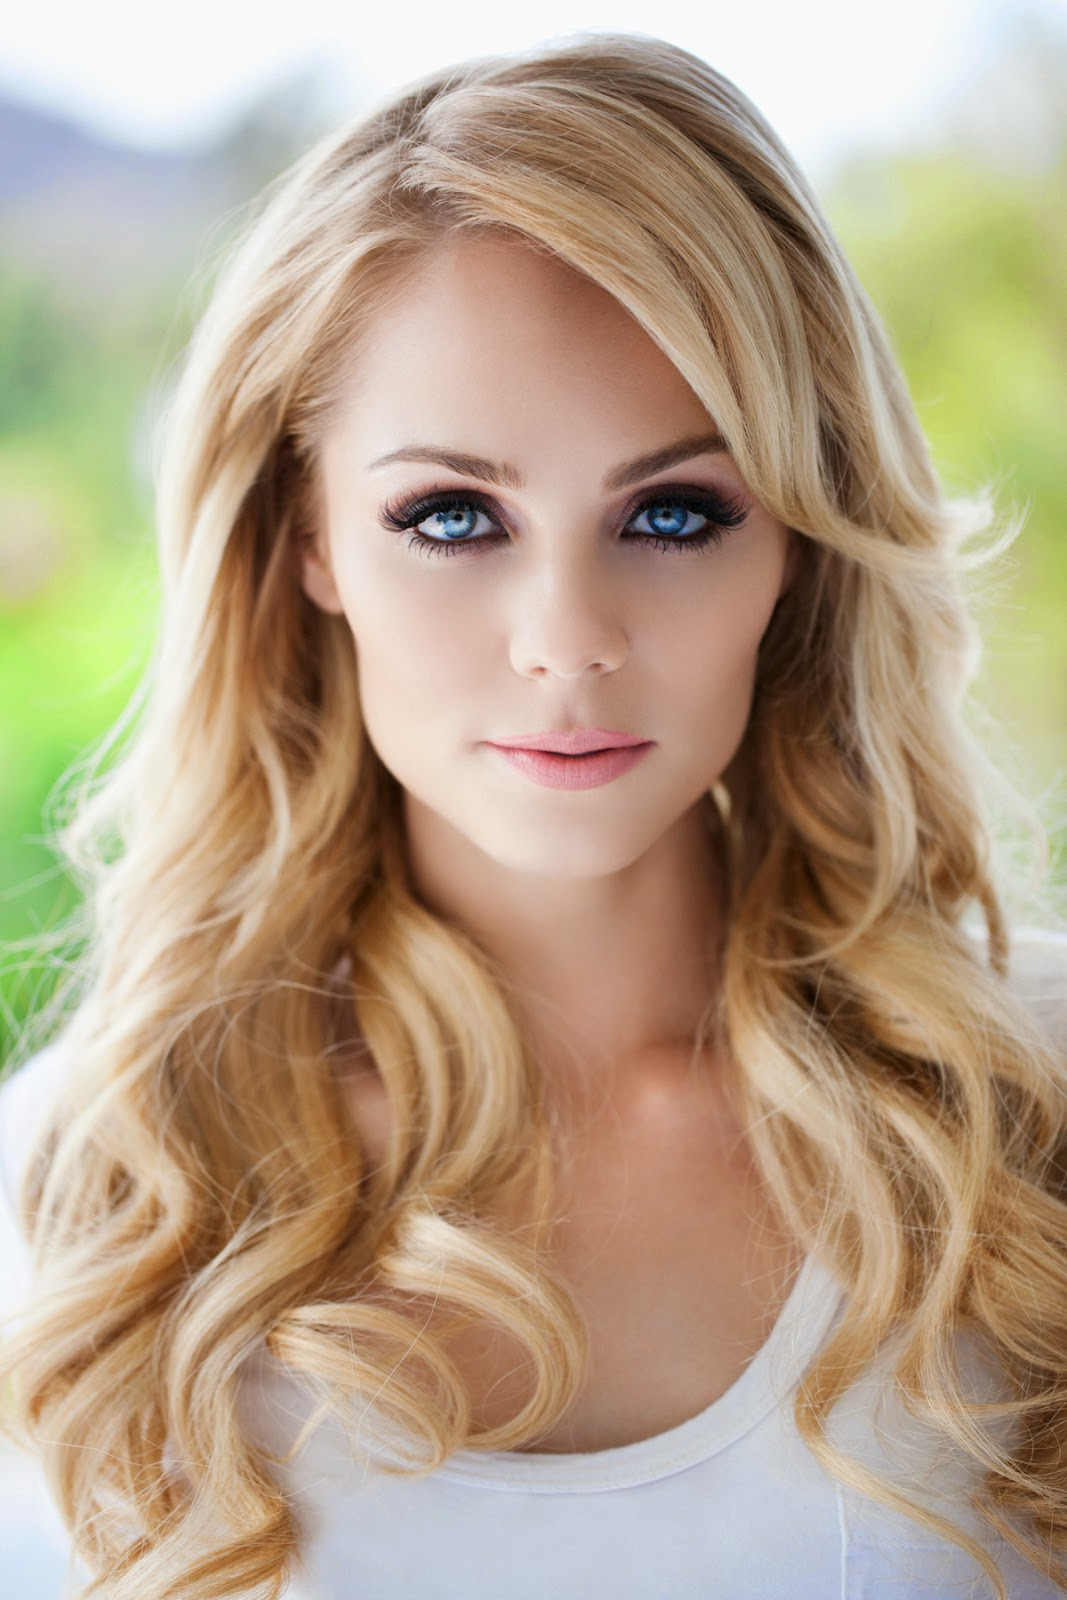 laura vandervoort giflaura vandervoort gif, laura vandervoort wallpaper, laura vandervoort twitter, laura vandervoort png, laura vandervoort tumblr gif, laura vandervoort leather, laura vandervoort site, laura vandervoort hawtcelebs, laura vandervoort 2016, laura vandervoort foto, laura vandervoort leg, laura vandervoort movies, laura vandervoort chris pine, laura vandervoort 2017, laura vandervoort instagram, laura vandervoort gif hunt, laura vandervoort imdb, laura vandervoort height weight measurements, laura vandervoort natural hair color, laura vandervoort gif hunt tumblr